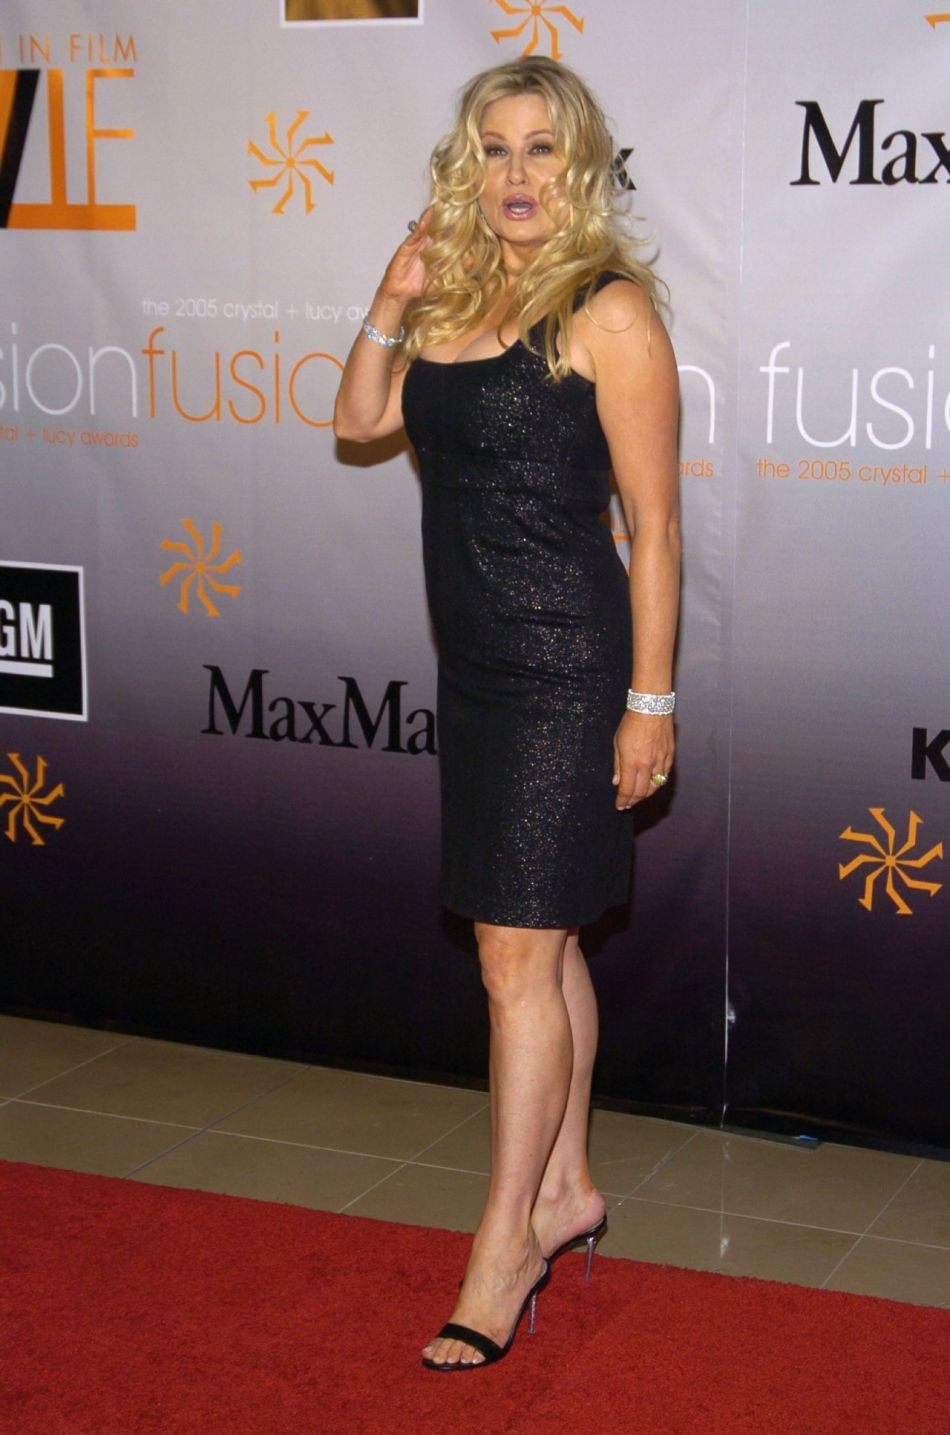 My Celebrity: Jennifer Coolidge Feet